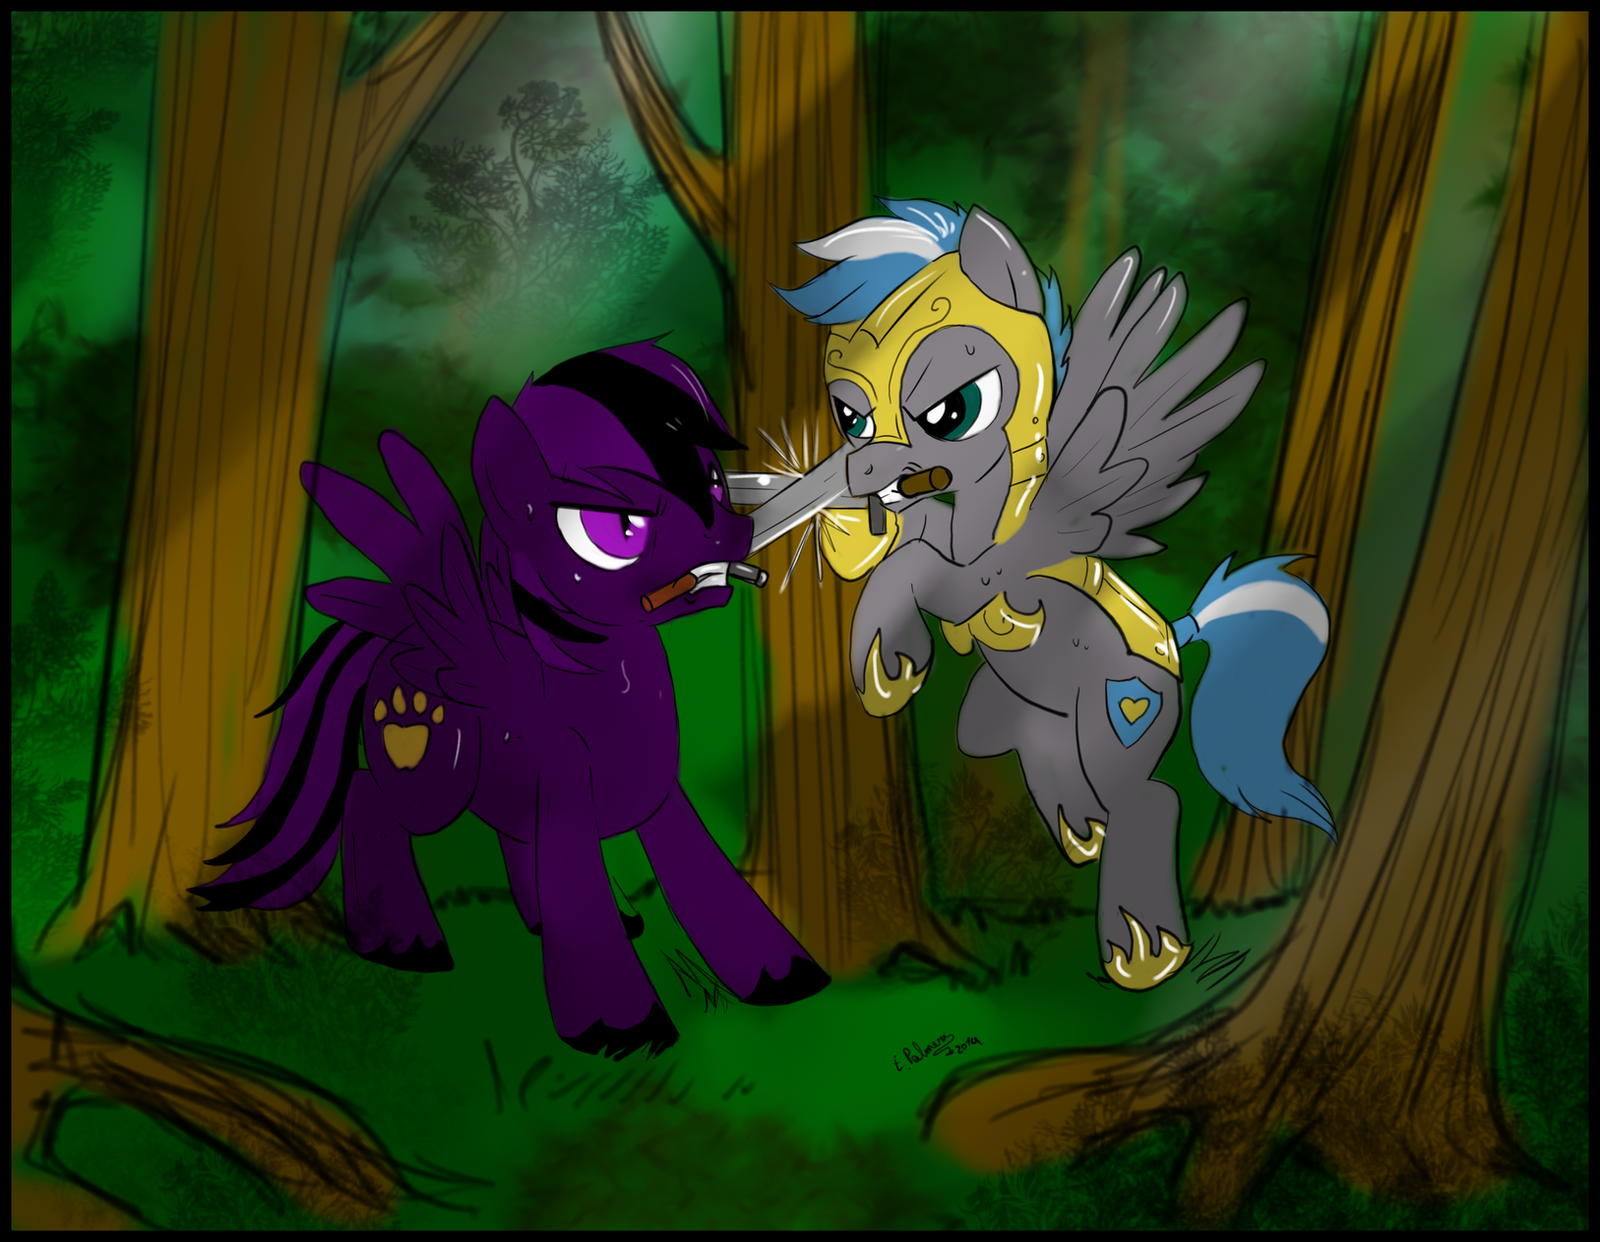 Commission - Battle in the forest by FuriarossaAndMimma